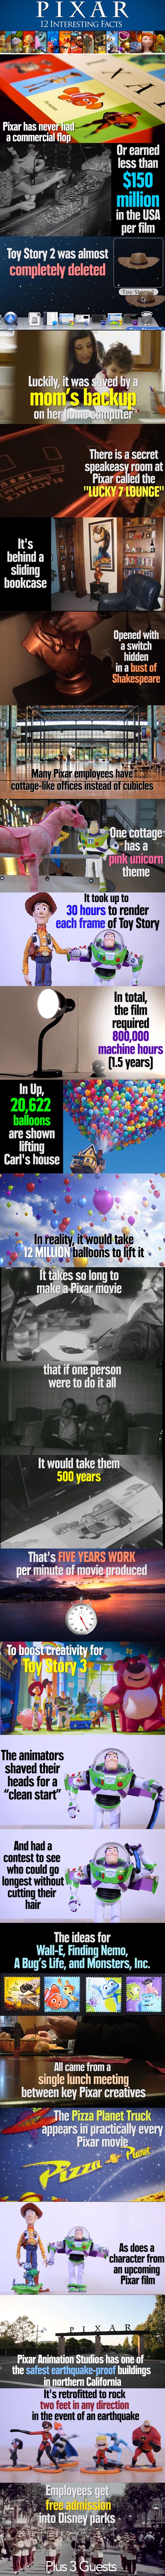 Interesting Facts about Disney's Pixar @Lindsey Grande Grande Grande Grande Carter - get a job at Pixar please.... :)